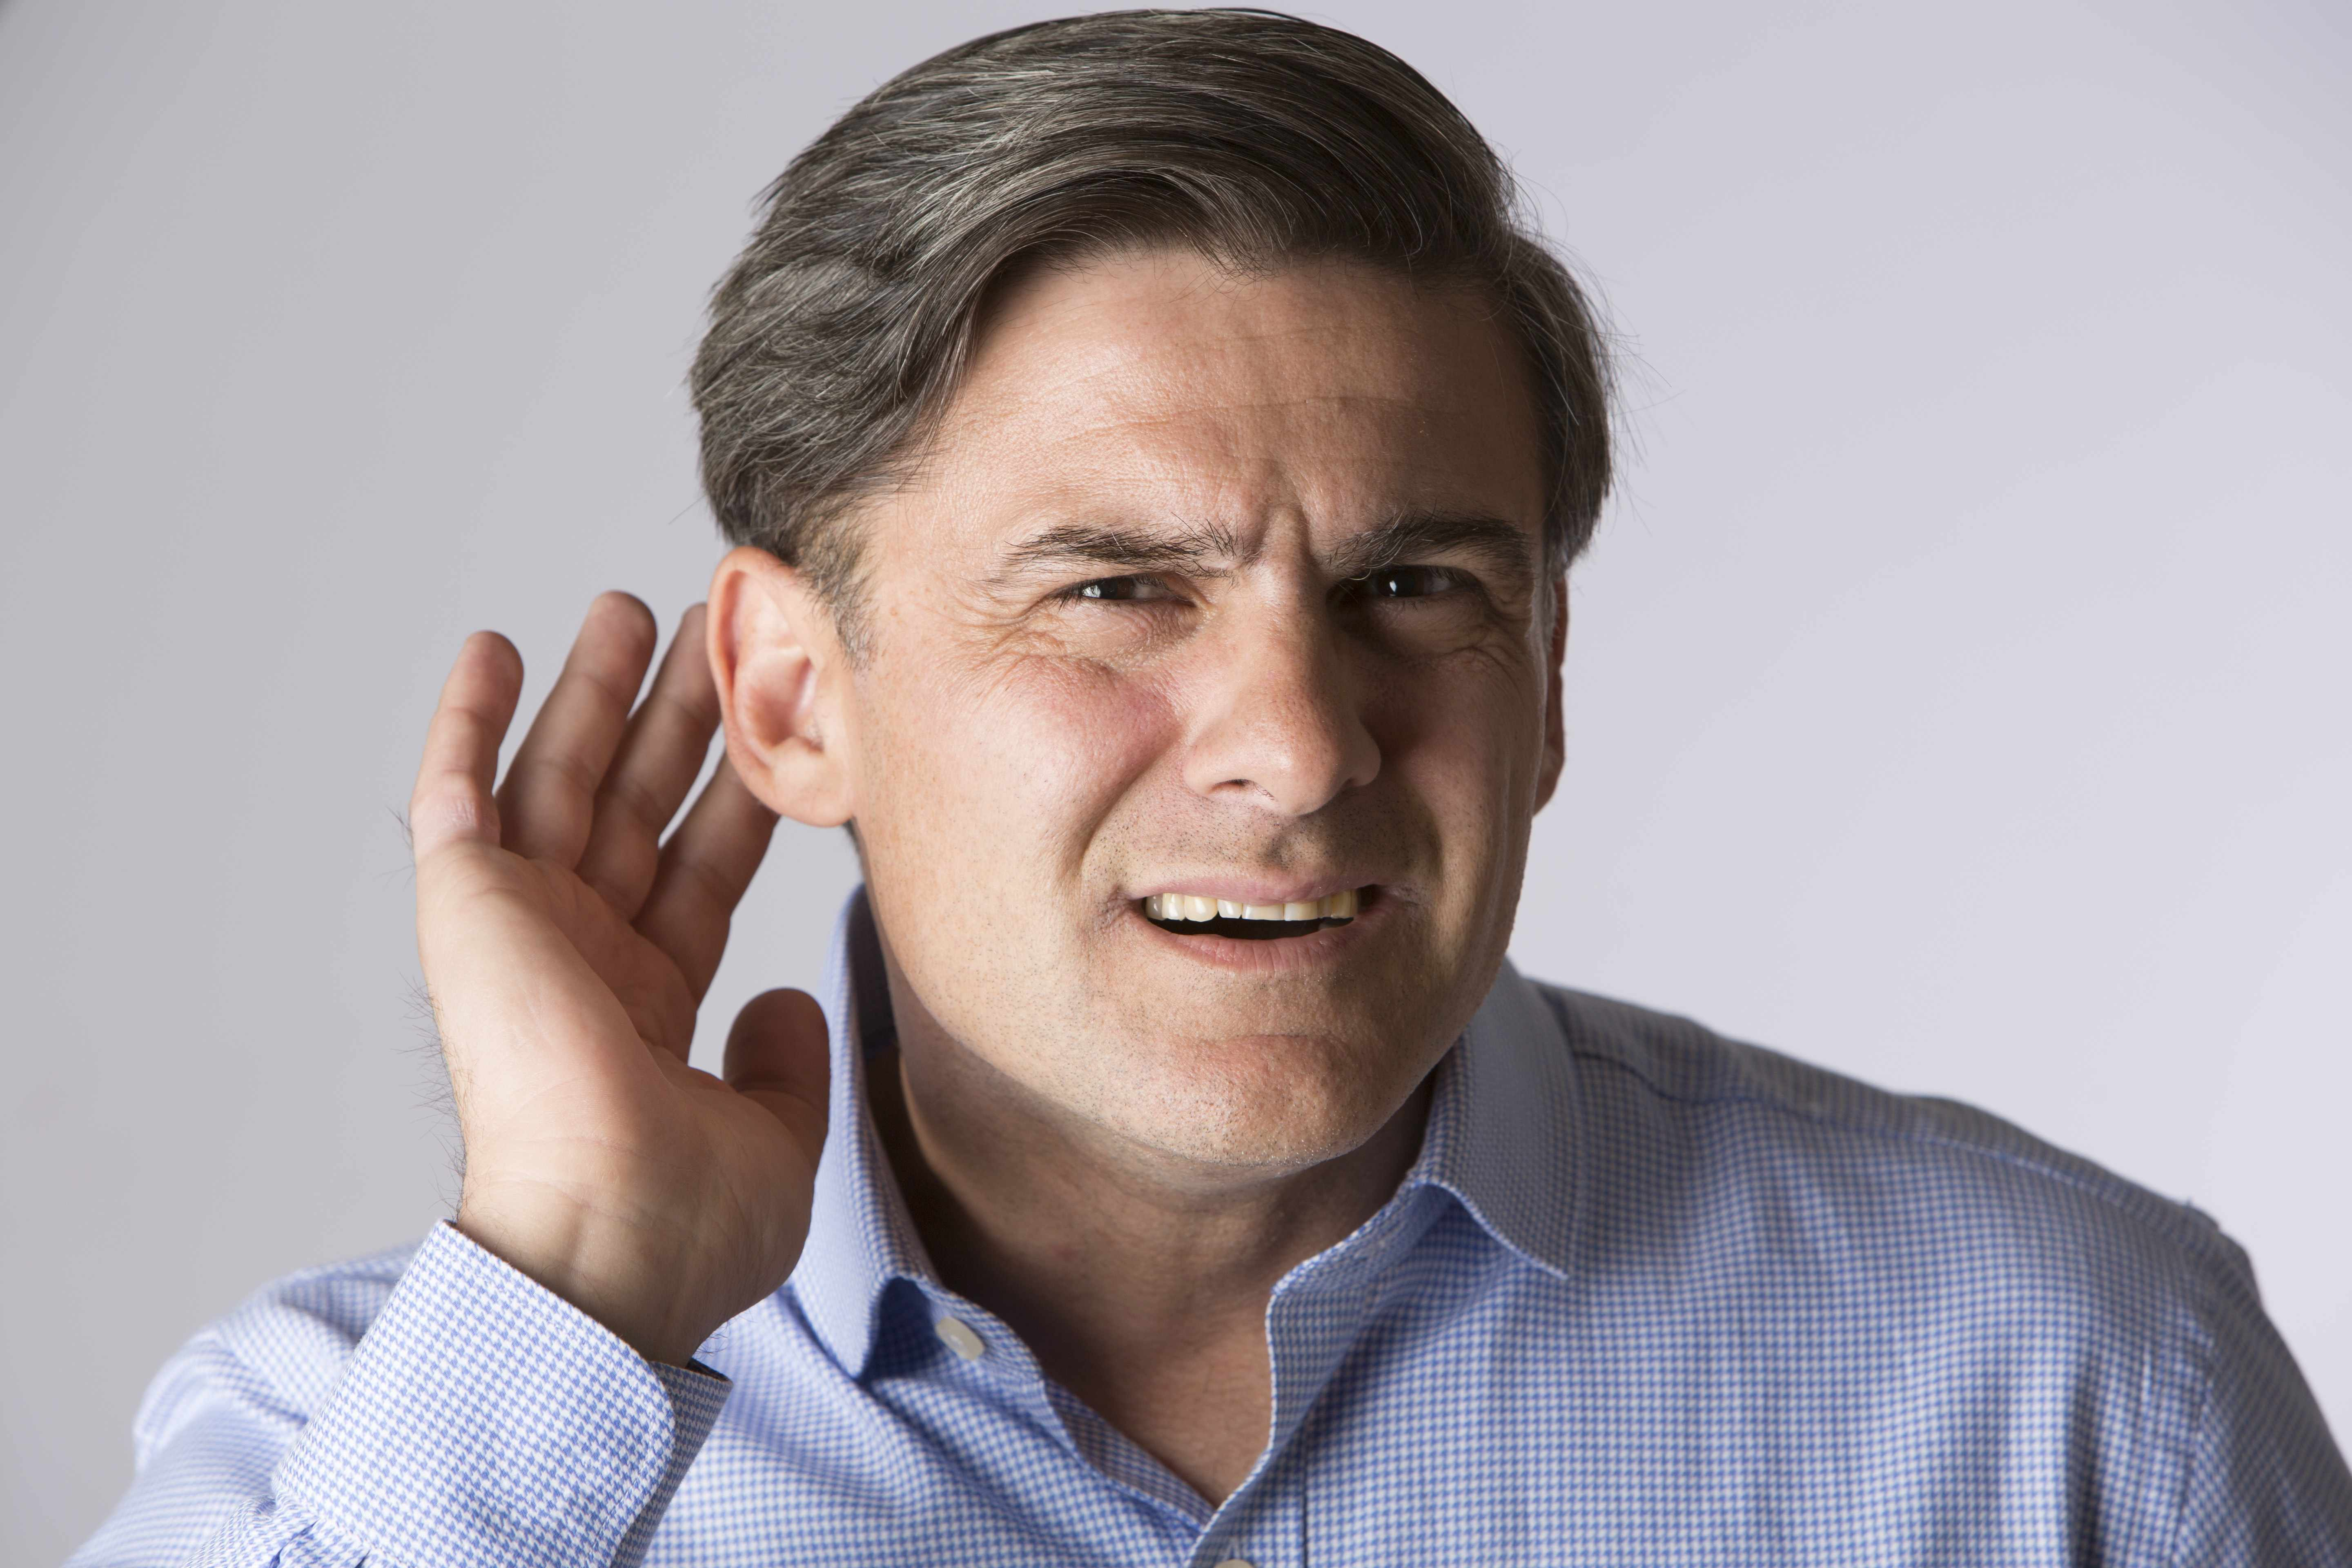 man trying to listen, cupping his ear because of hearing loss